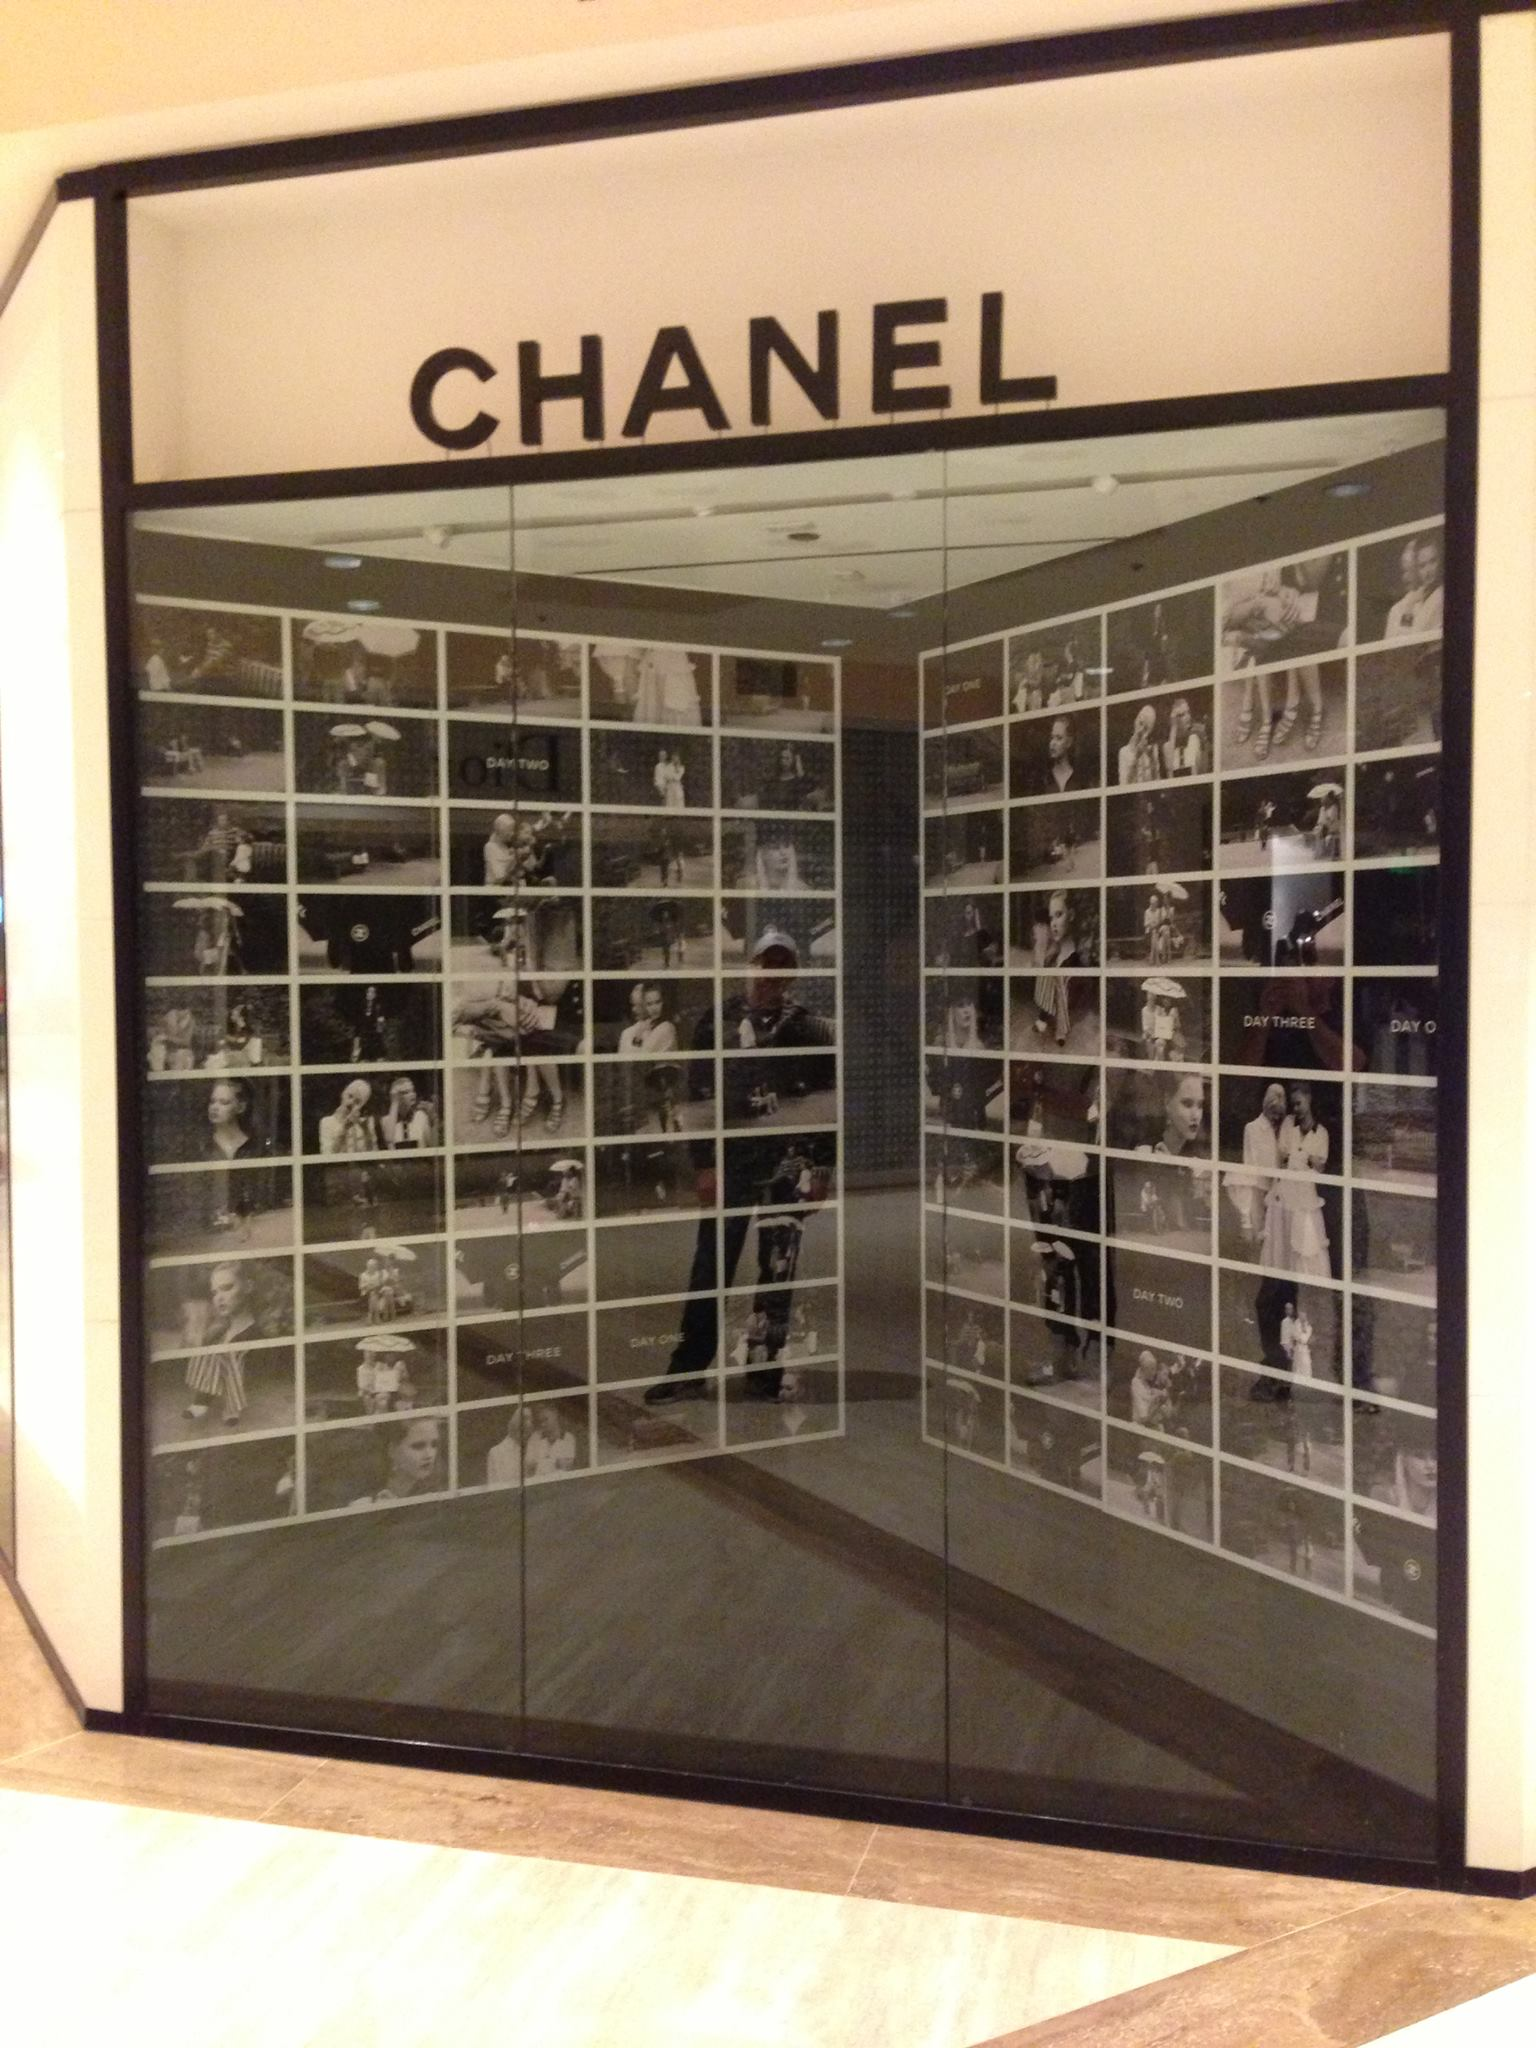 graphic design, chanel